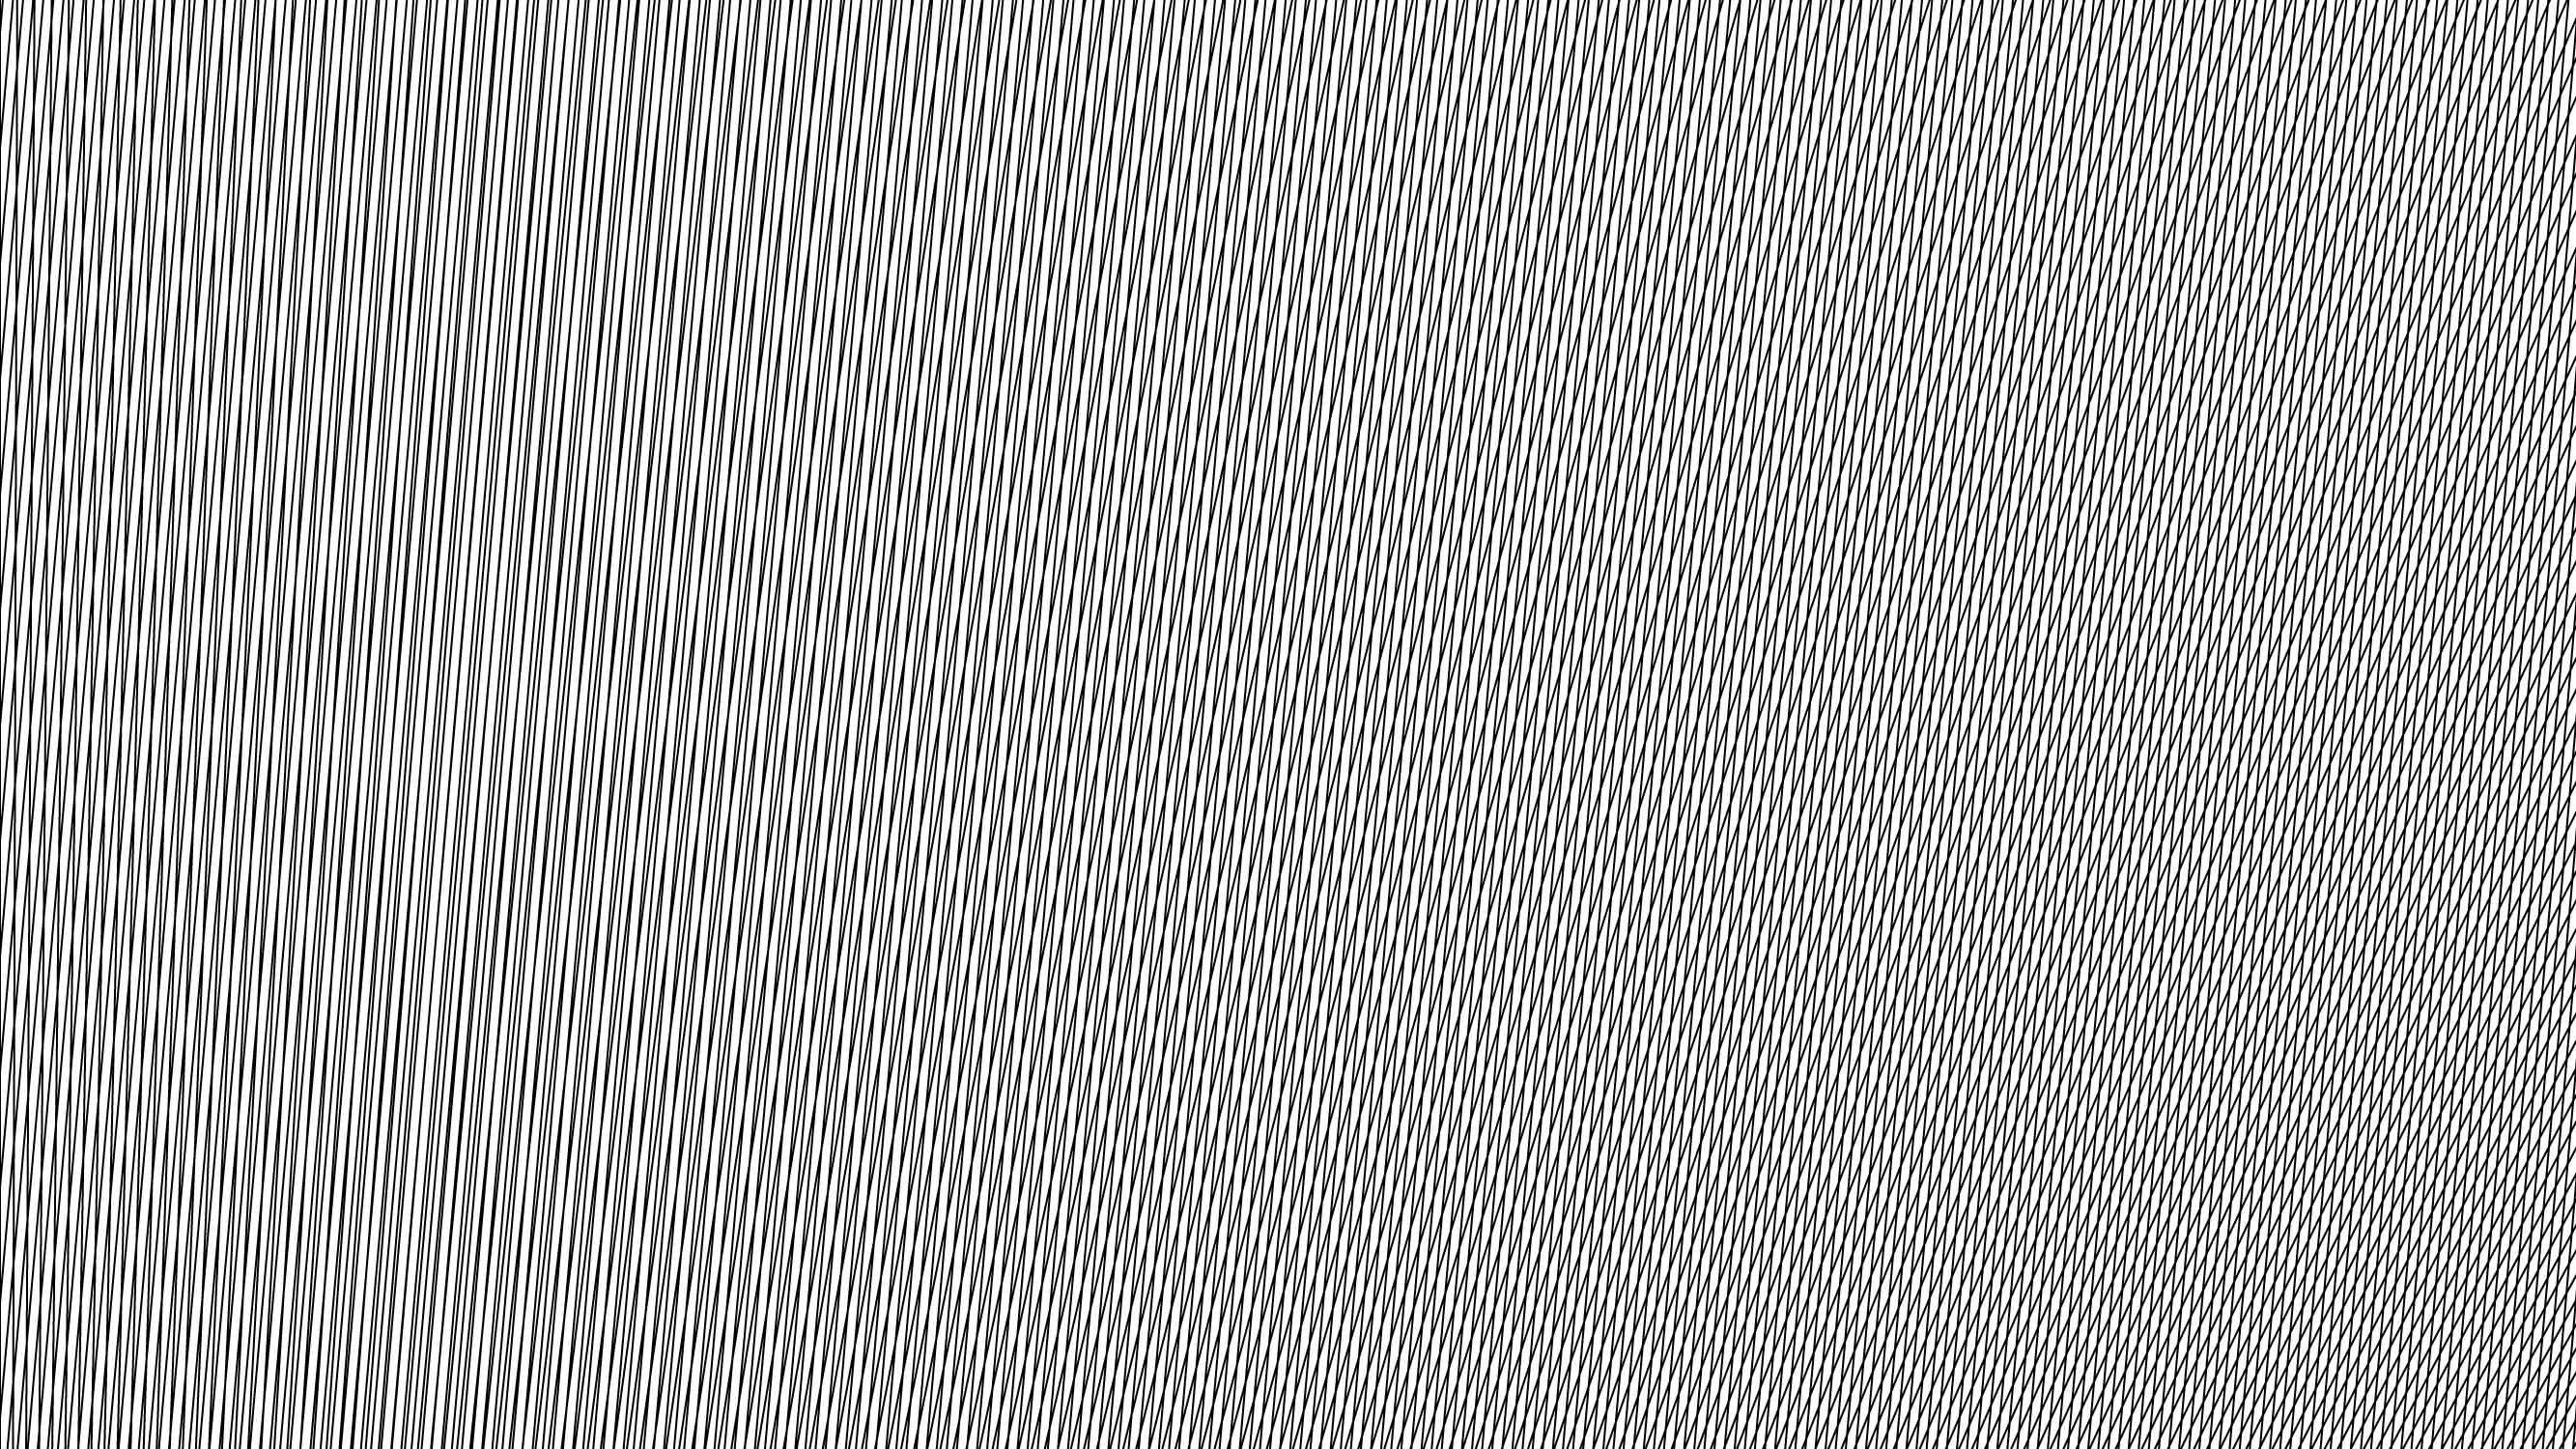 Vertical Lines On My Images And Video